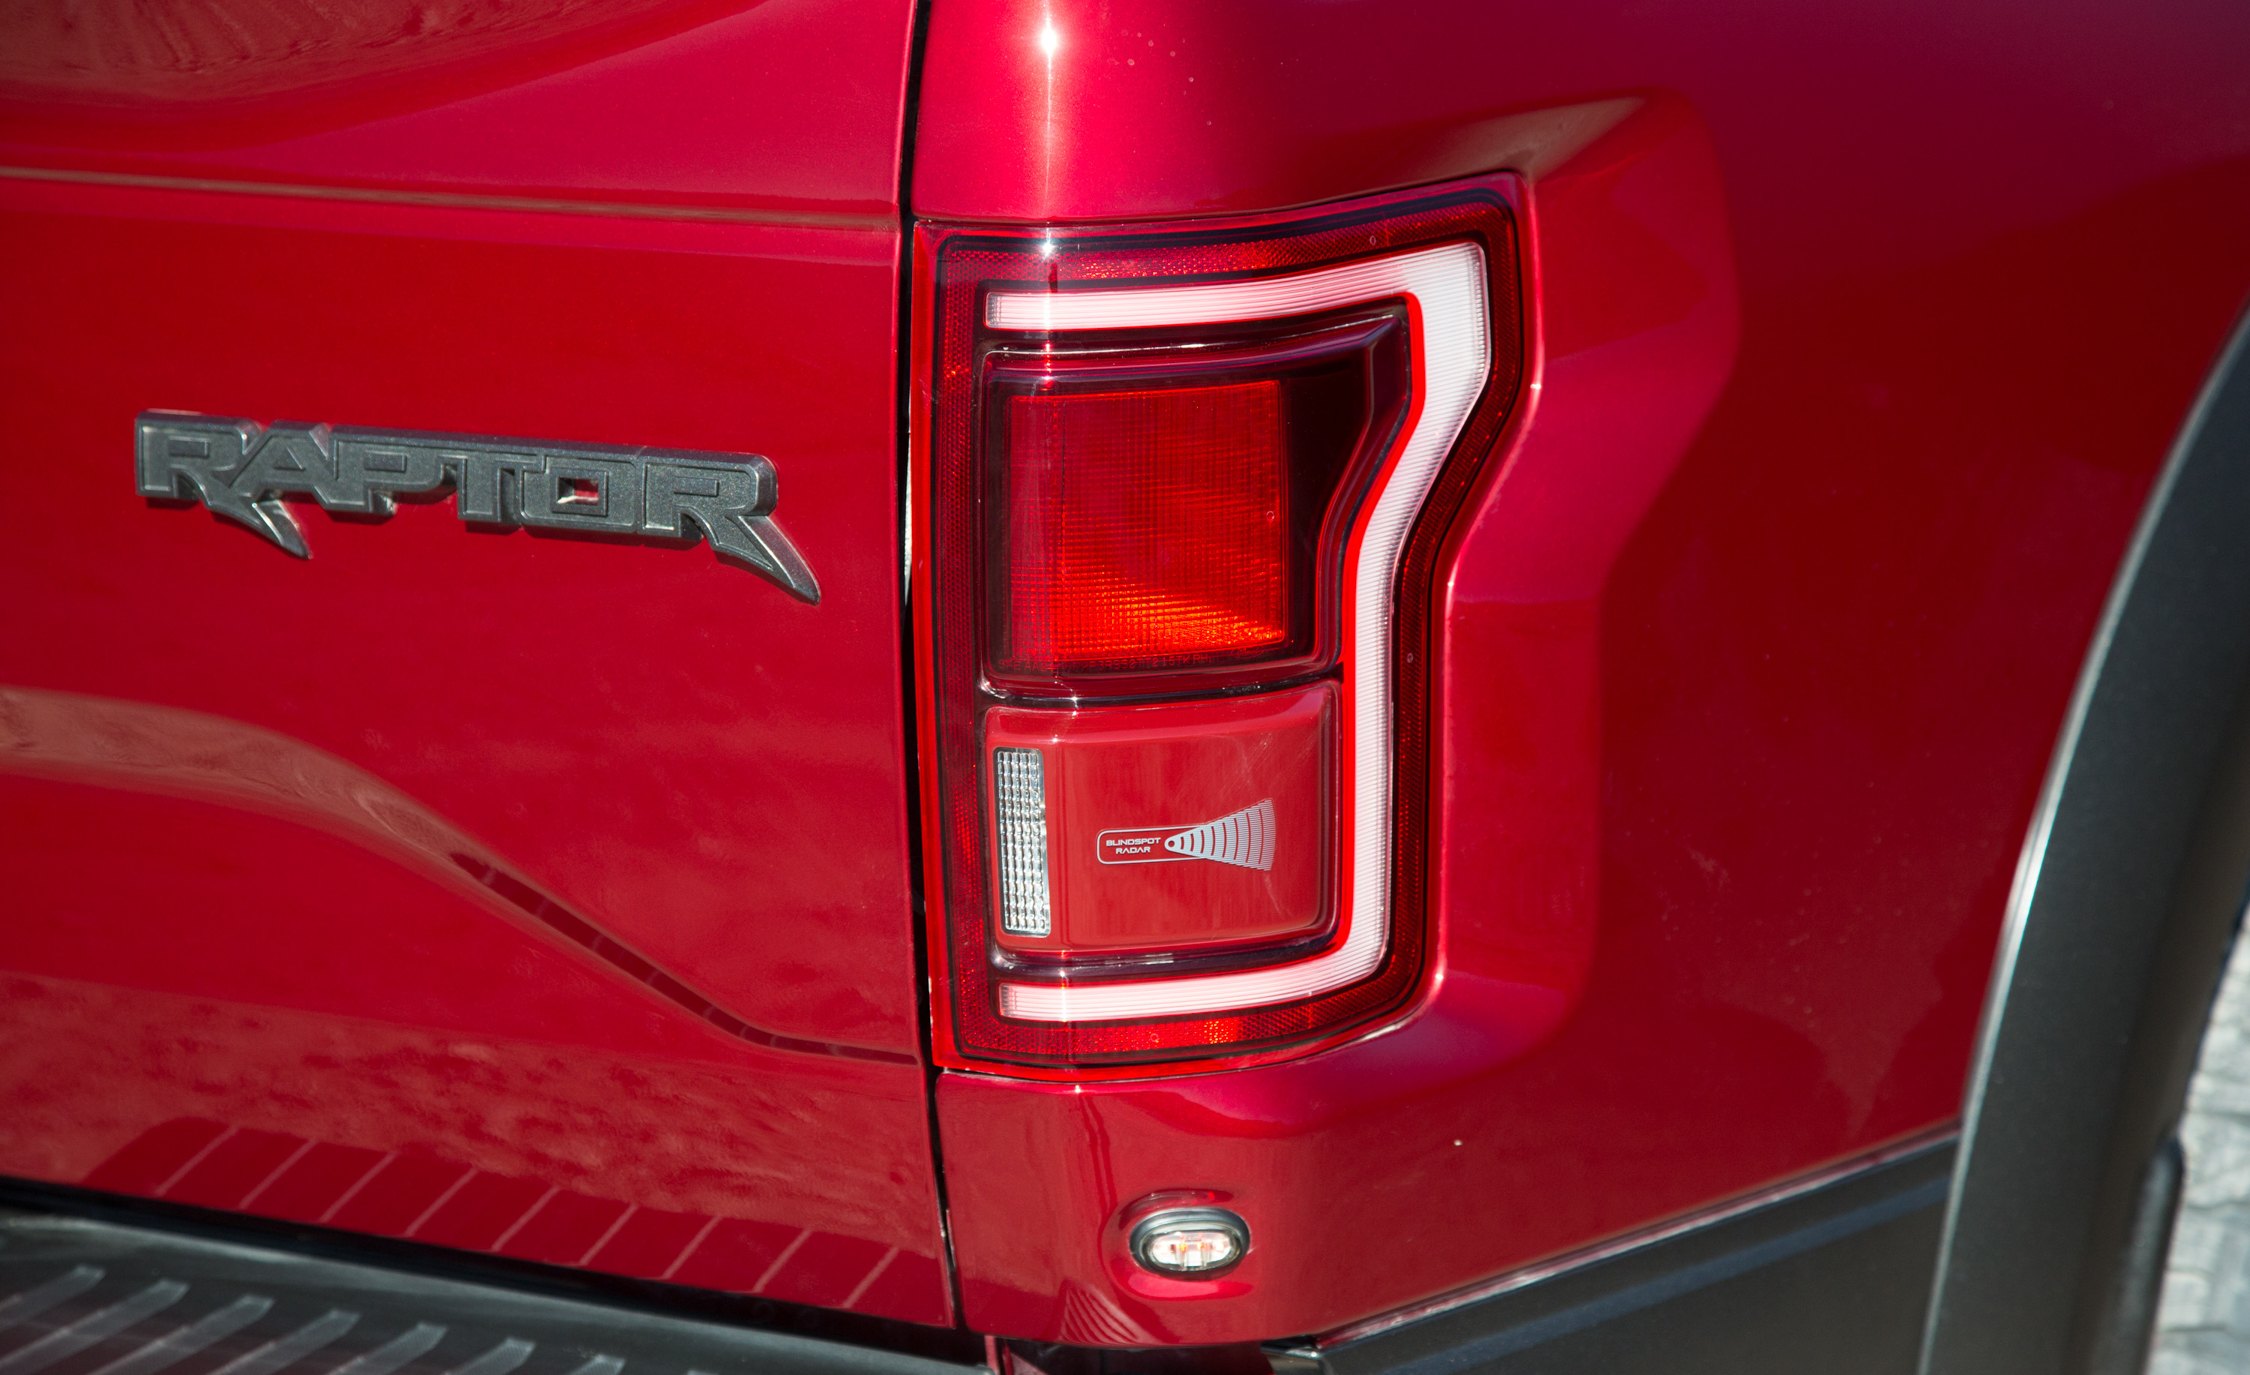 2017 Ford F 150 Raptor SuperCab Exterior View Taillight And Badge (View 44 of 47)